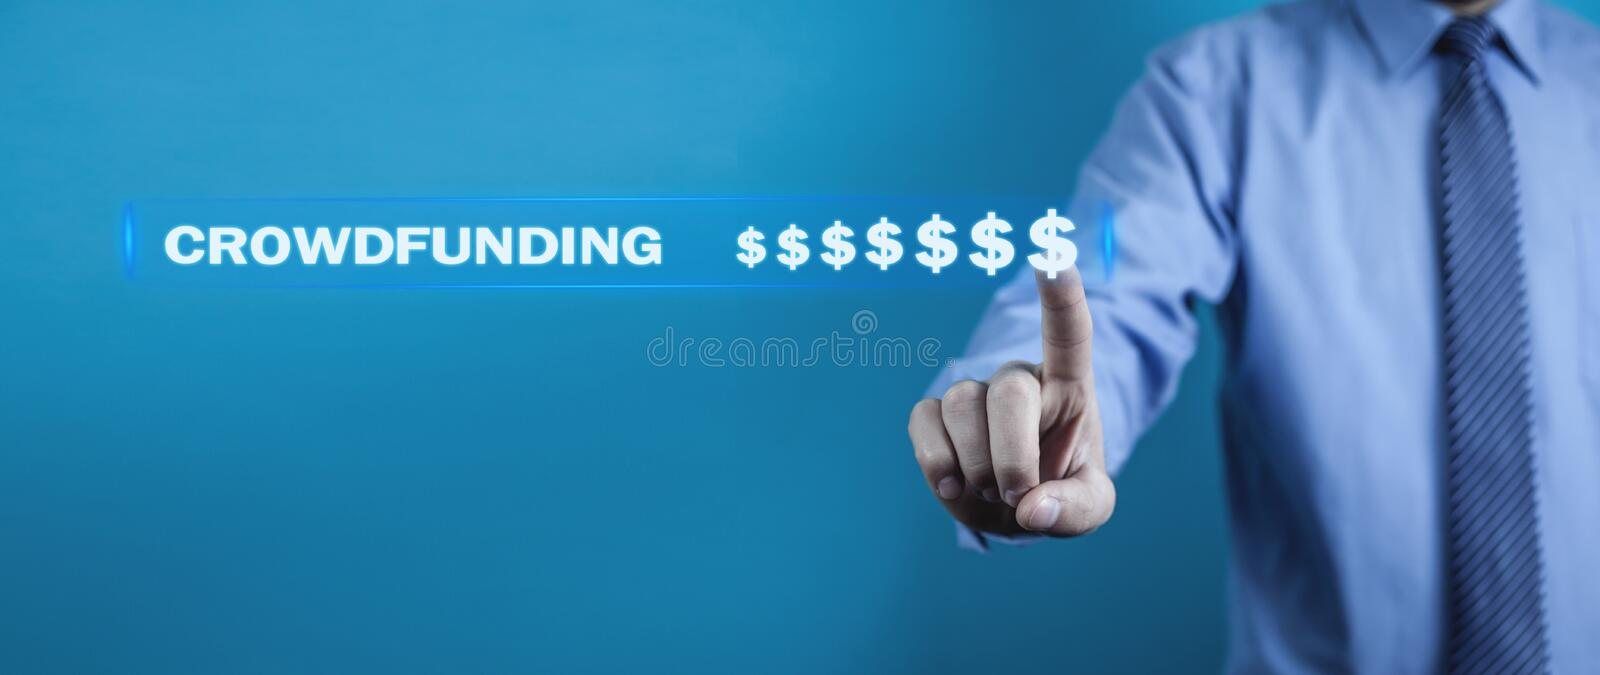 Businessman pressing dollar signs. Crowdfunding concept stock image